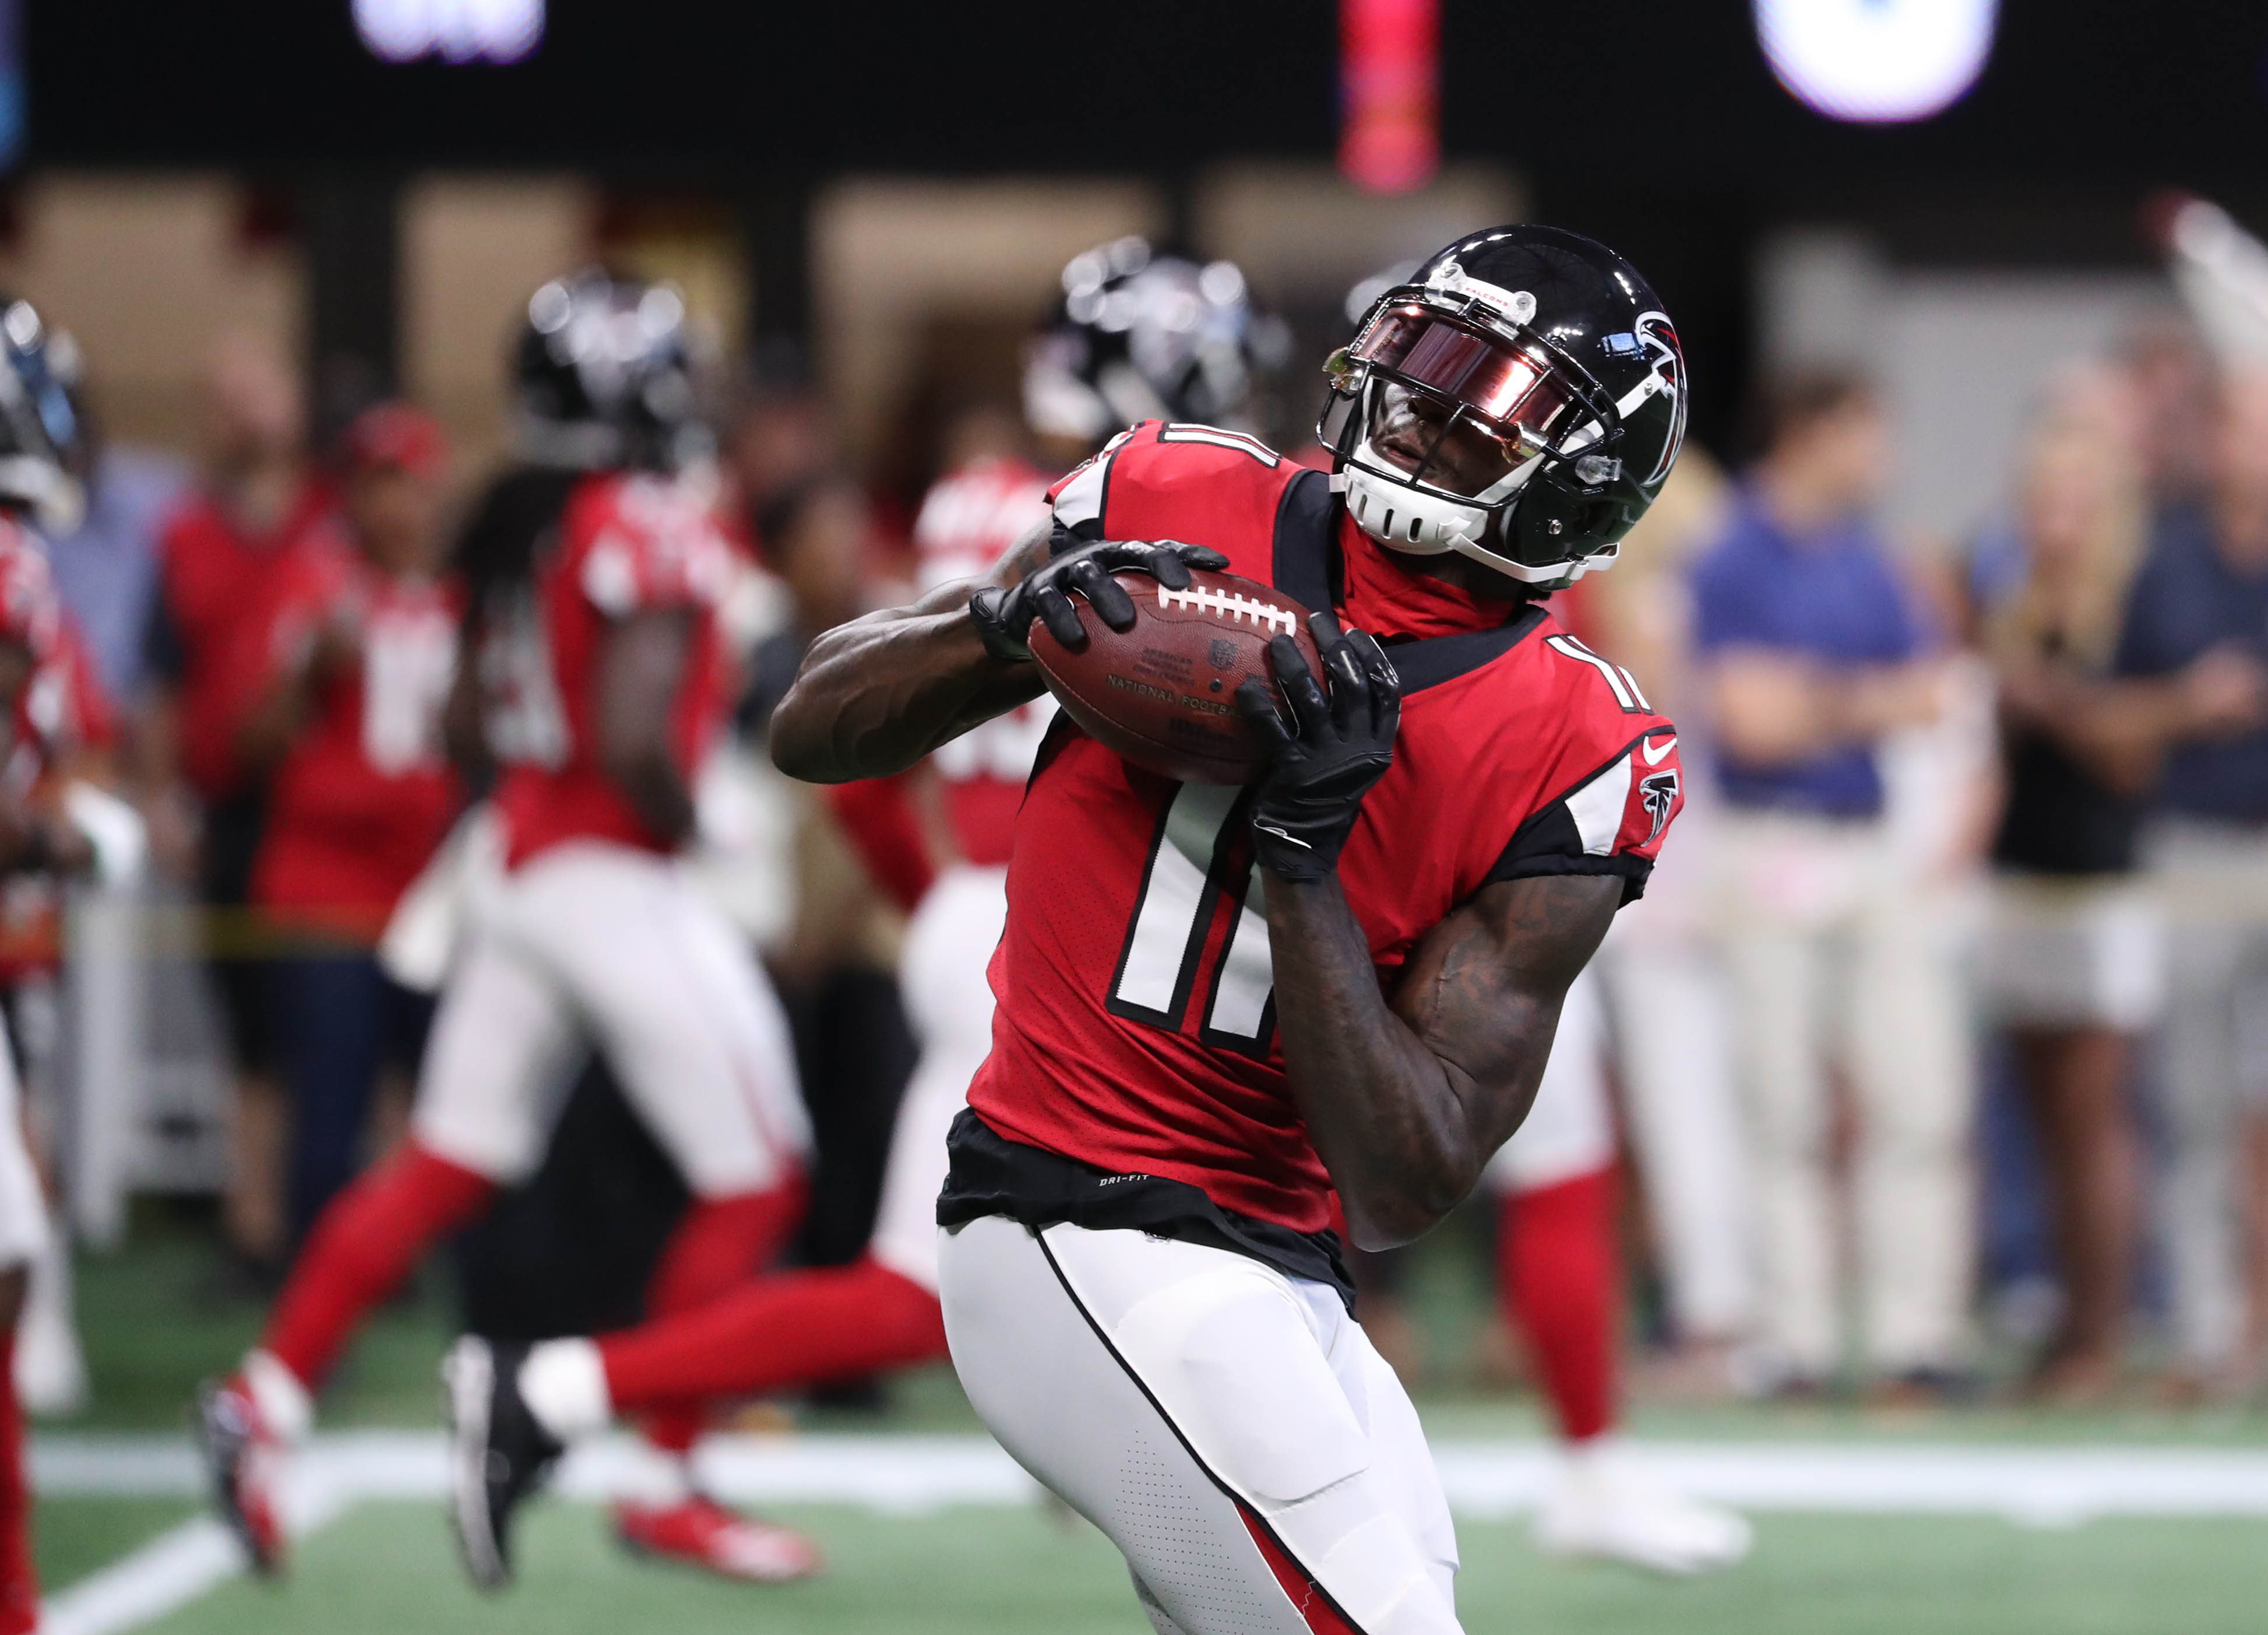 NFL fans furious that Julio Jones' apparent catch was ruled incomplete